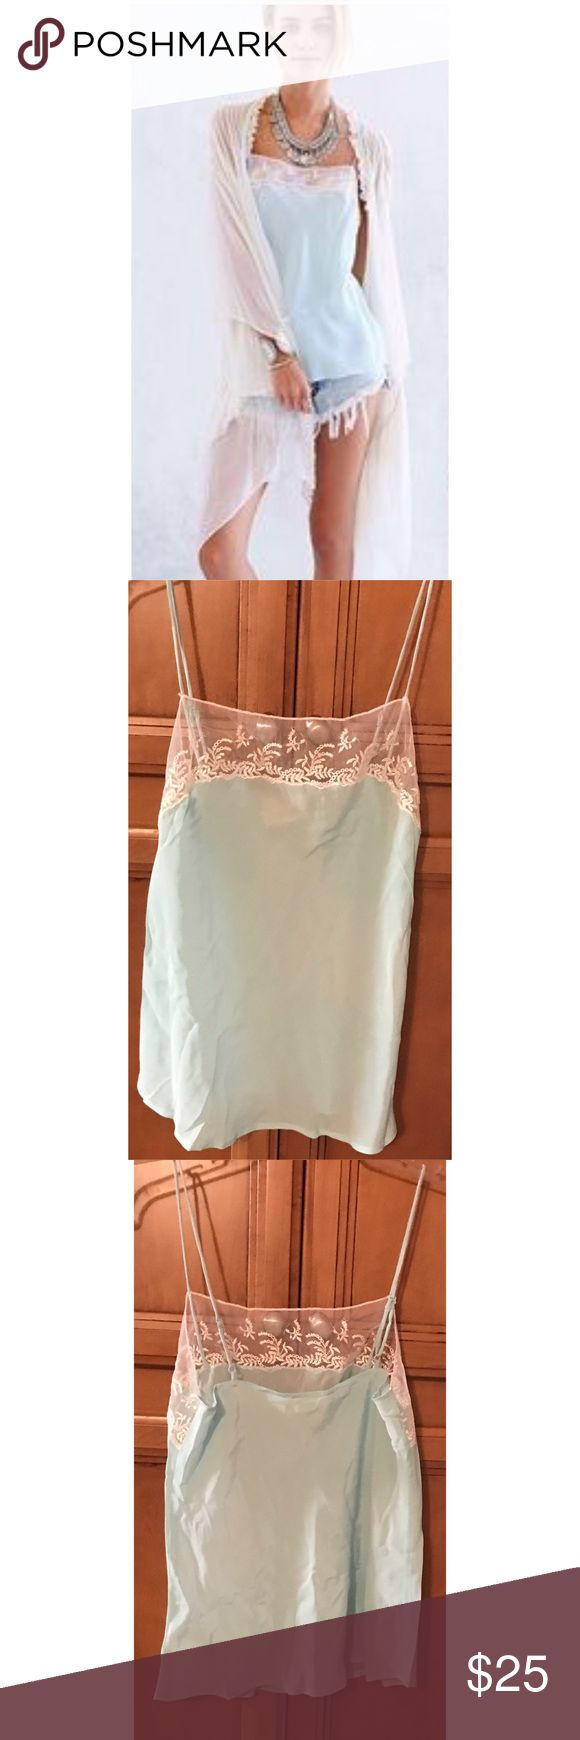 Anthropologie Pins & Needles 100% Silk Cami Shirt Anthropologie / Urban Outfitters Pins and Needles label. Wear as a top or as lingerie! So light and airy! Shocking neon colors and tea stain lace.  Adjustable straps too. 100% silk. Hand wash delicate cold lie flat to dry. Label crossed out. Length: 24 inches  Bust: 34 inches  Waist: 35 inches Anthropologie Tops Camisoles